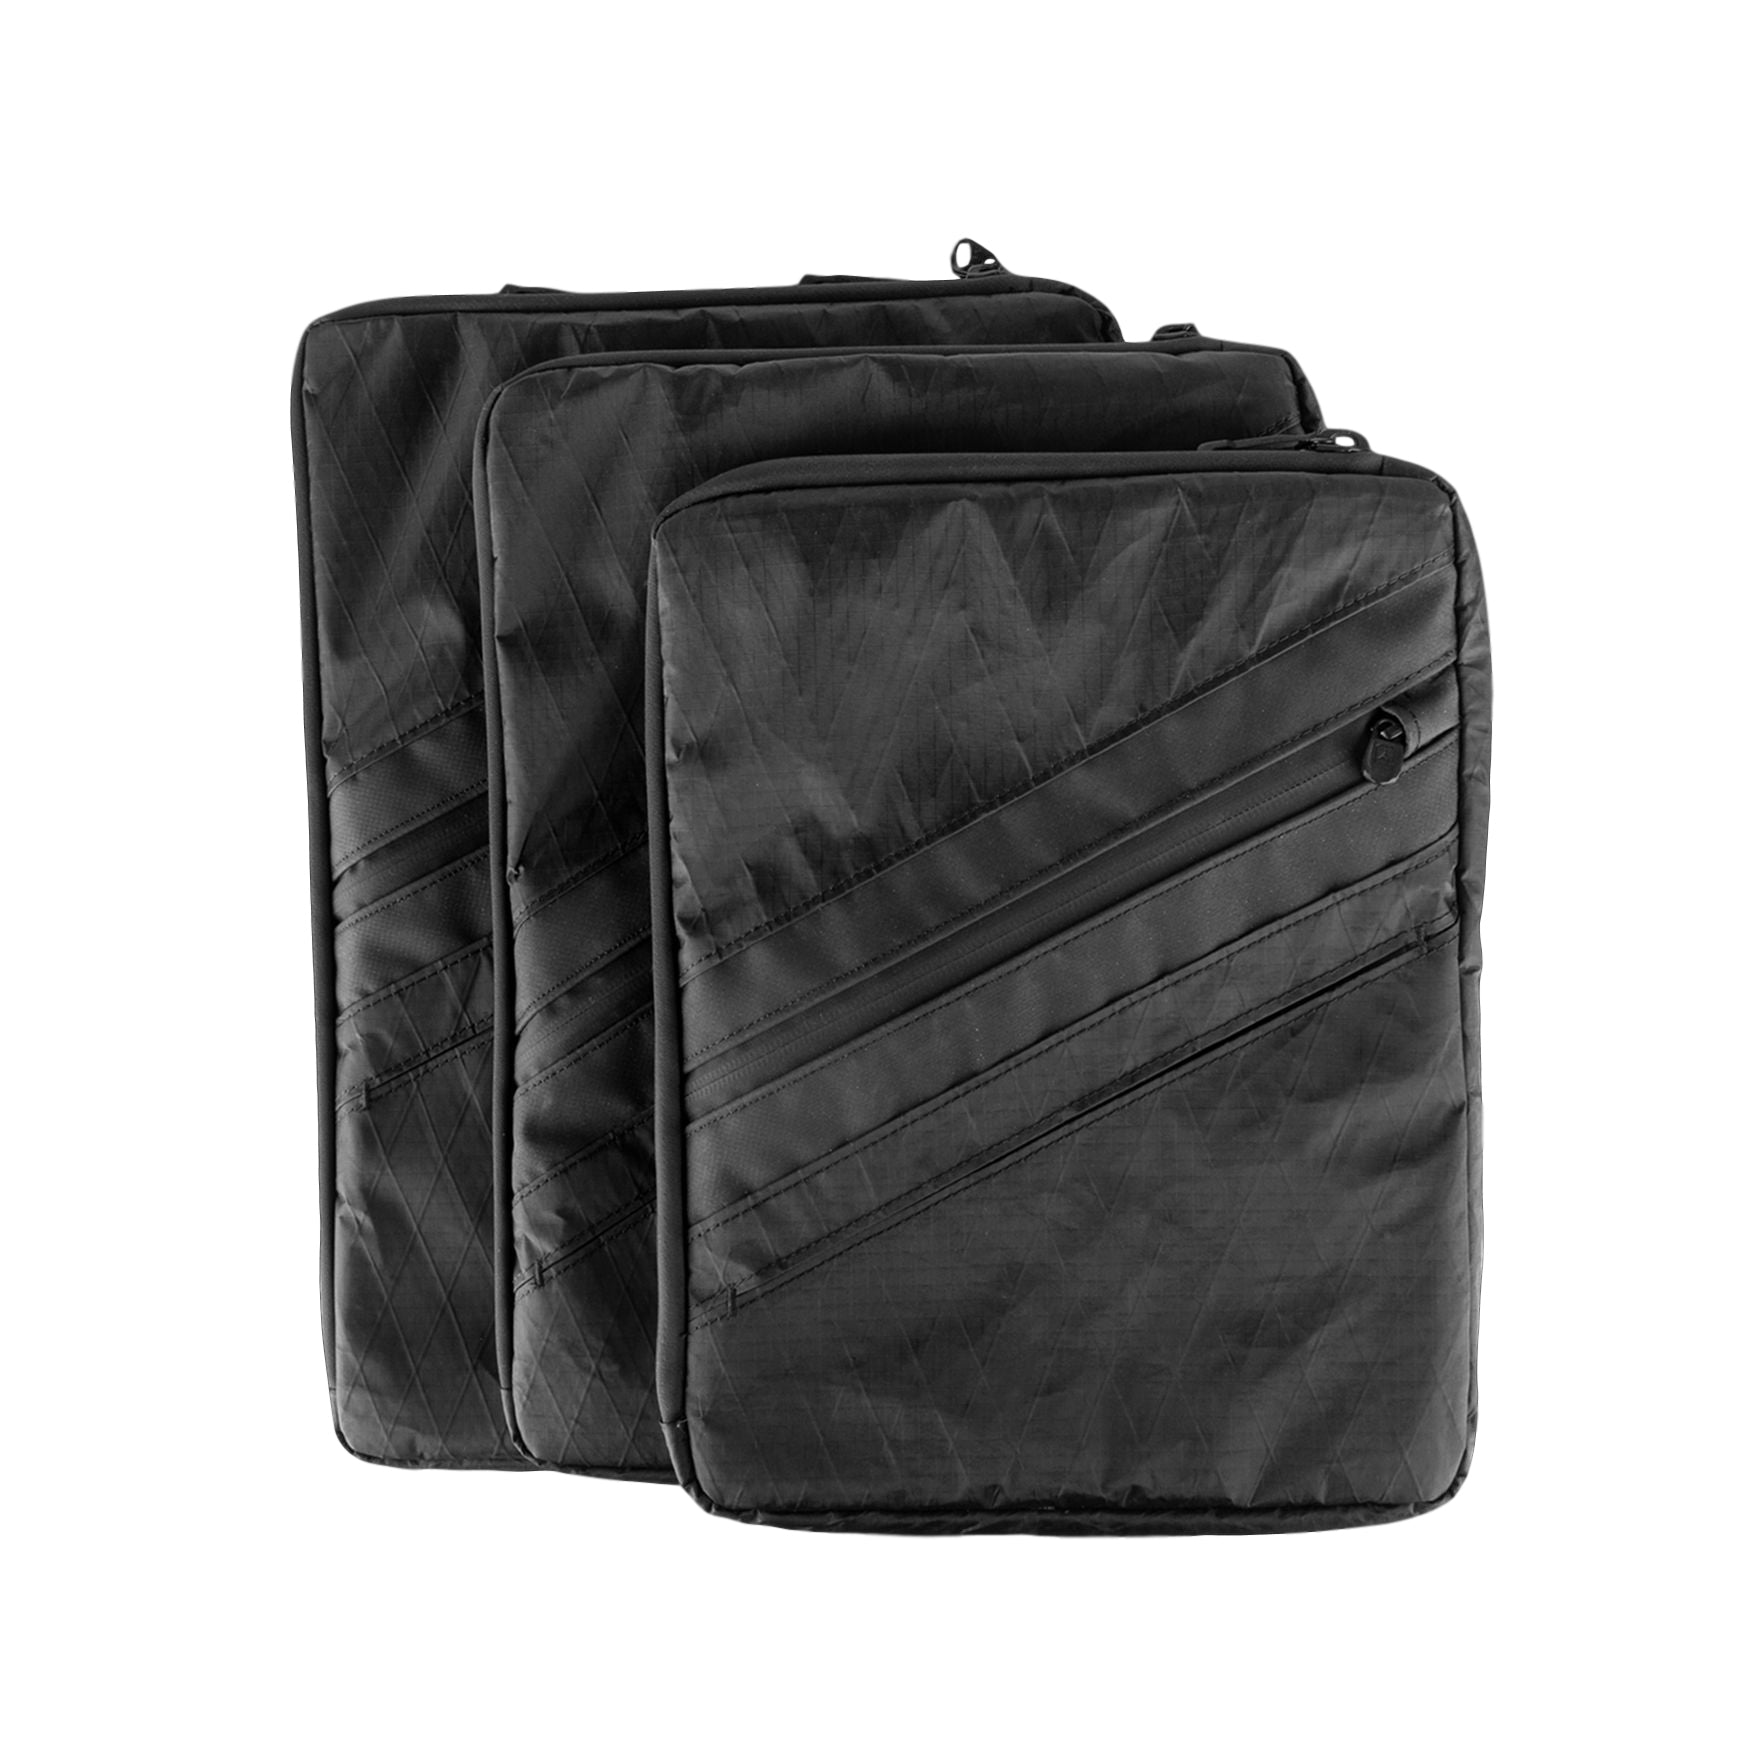 Triple Aught Design Transport Sleeve